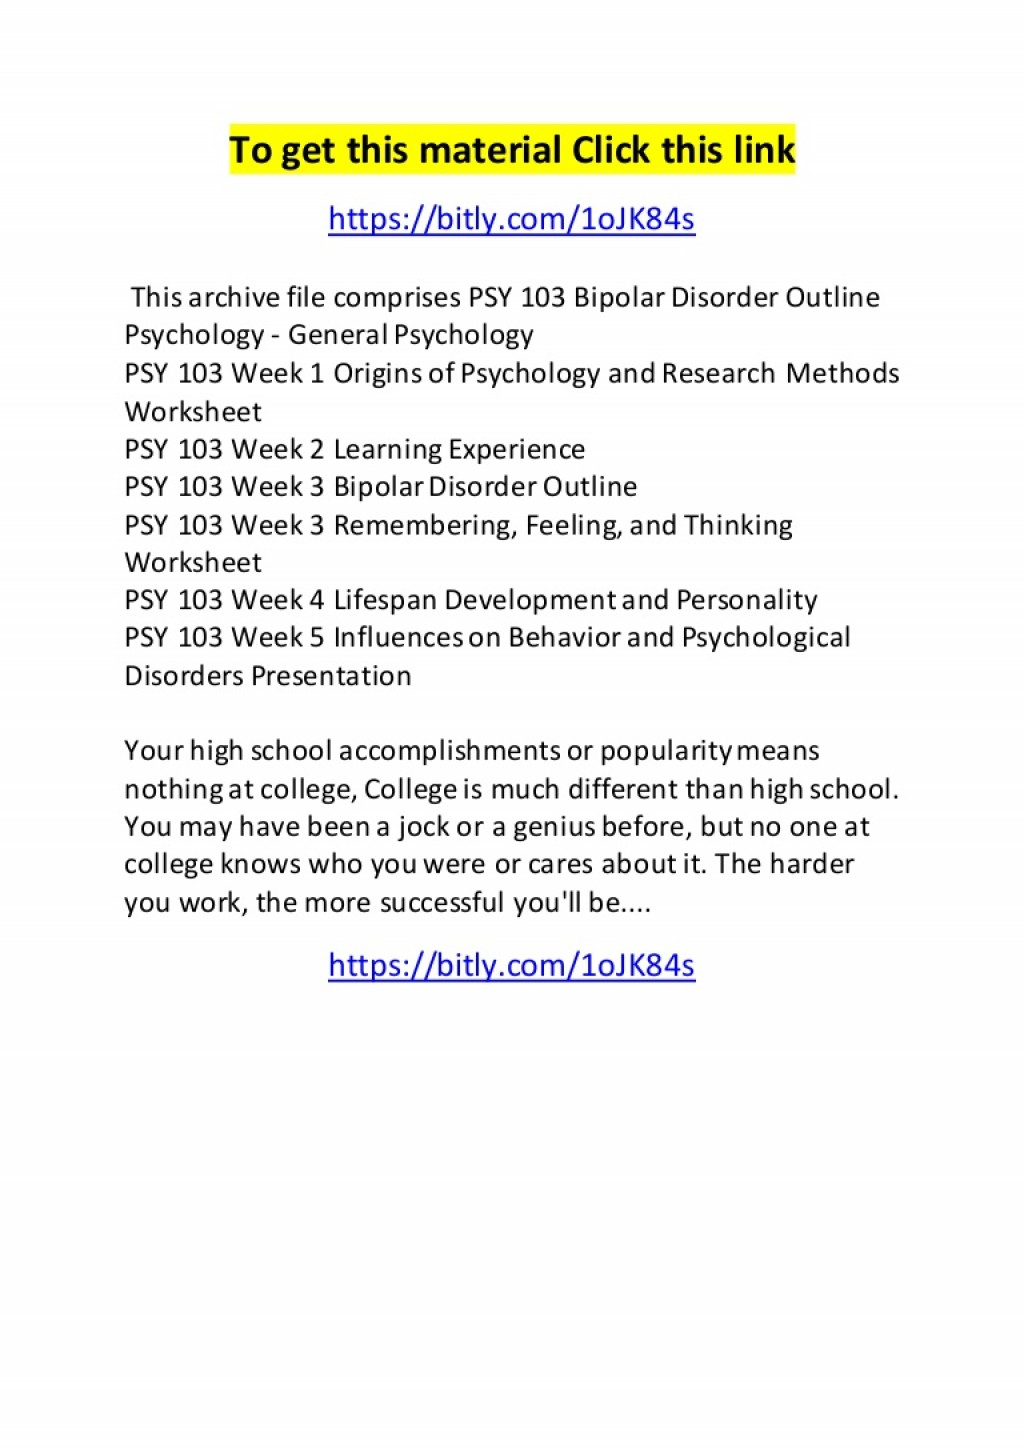 004 Bipolar Disorder Research Paper Outline Psy103bipolardisorderoutline Conversion Gate02 Thumbnail Breathtaking Large